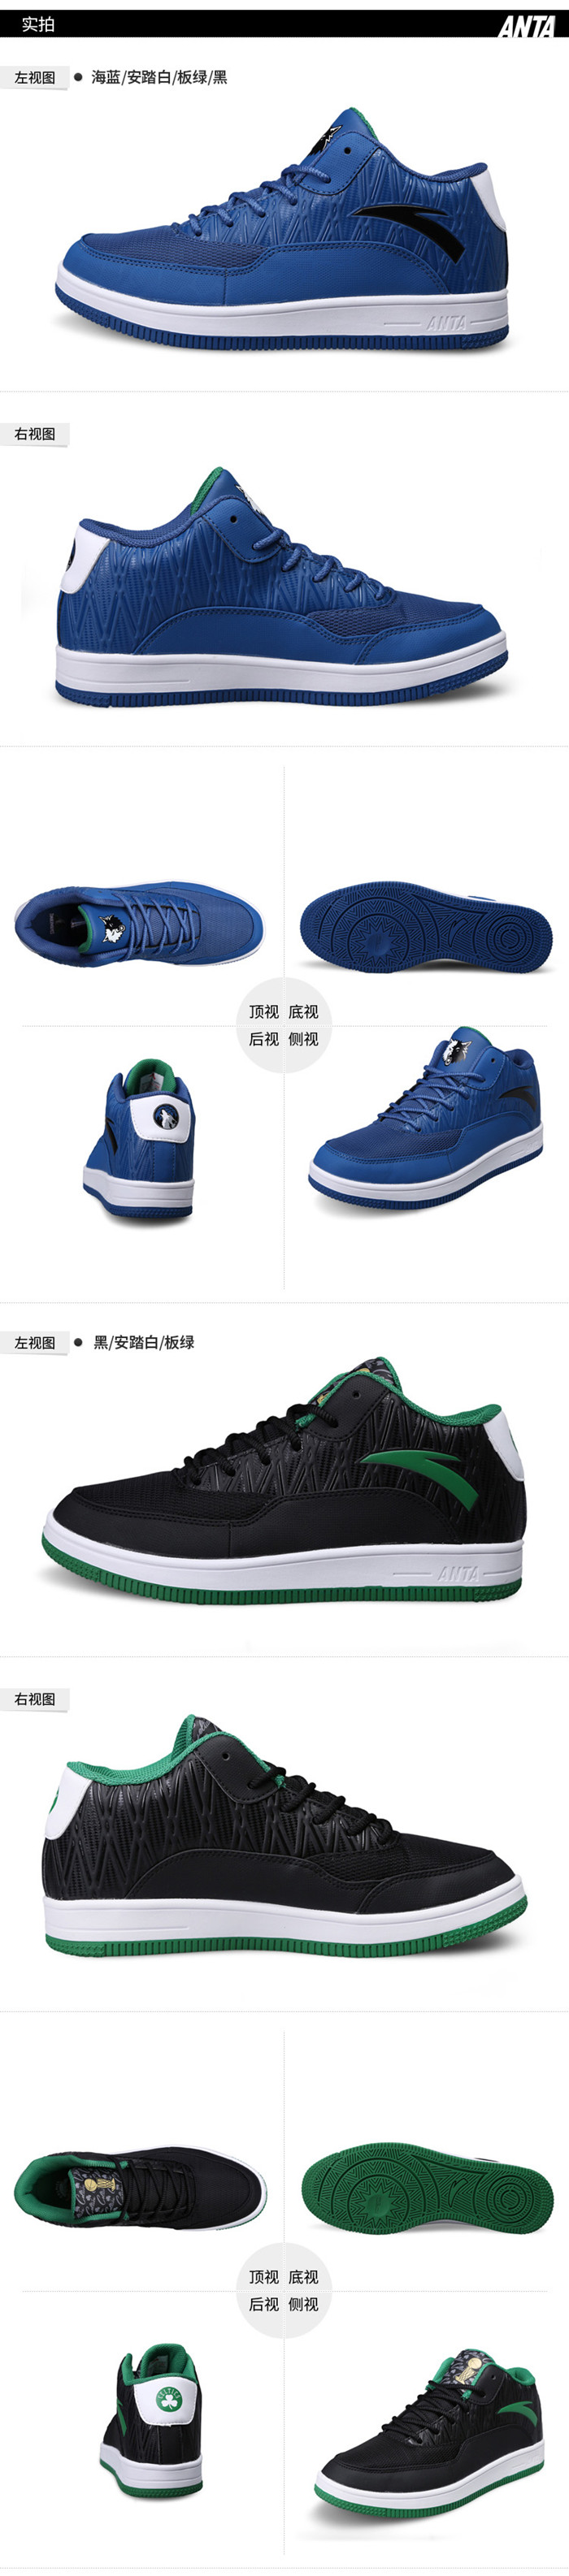 Anta Non-Slip Durable Breathable NBA Basketball Shoes